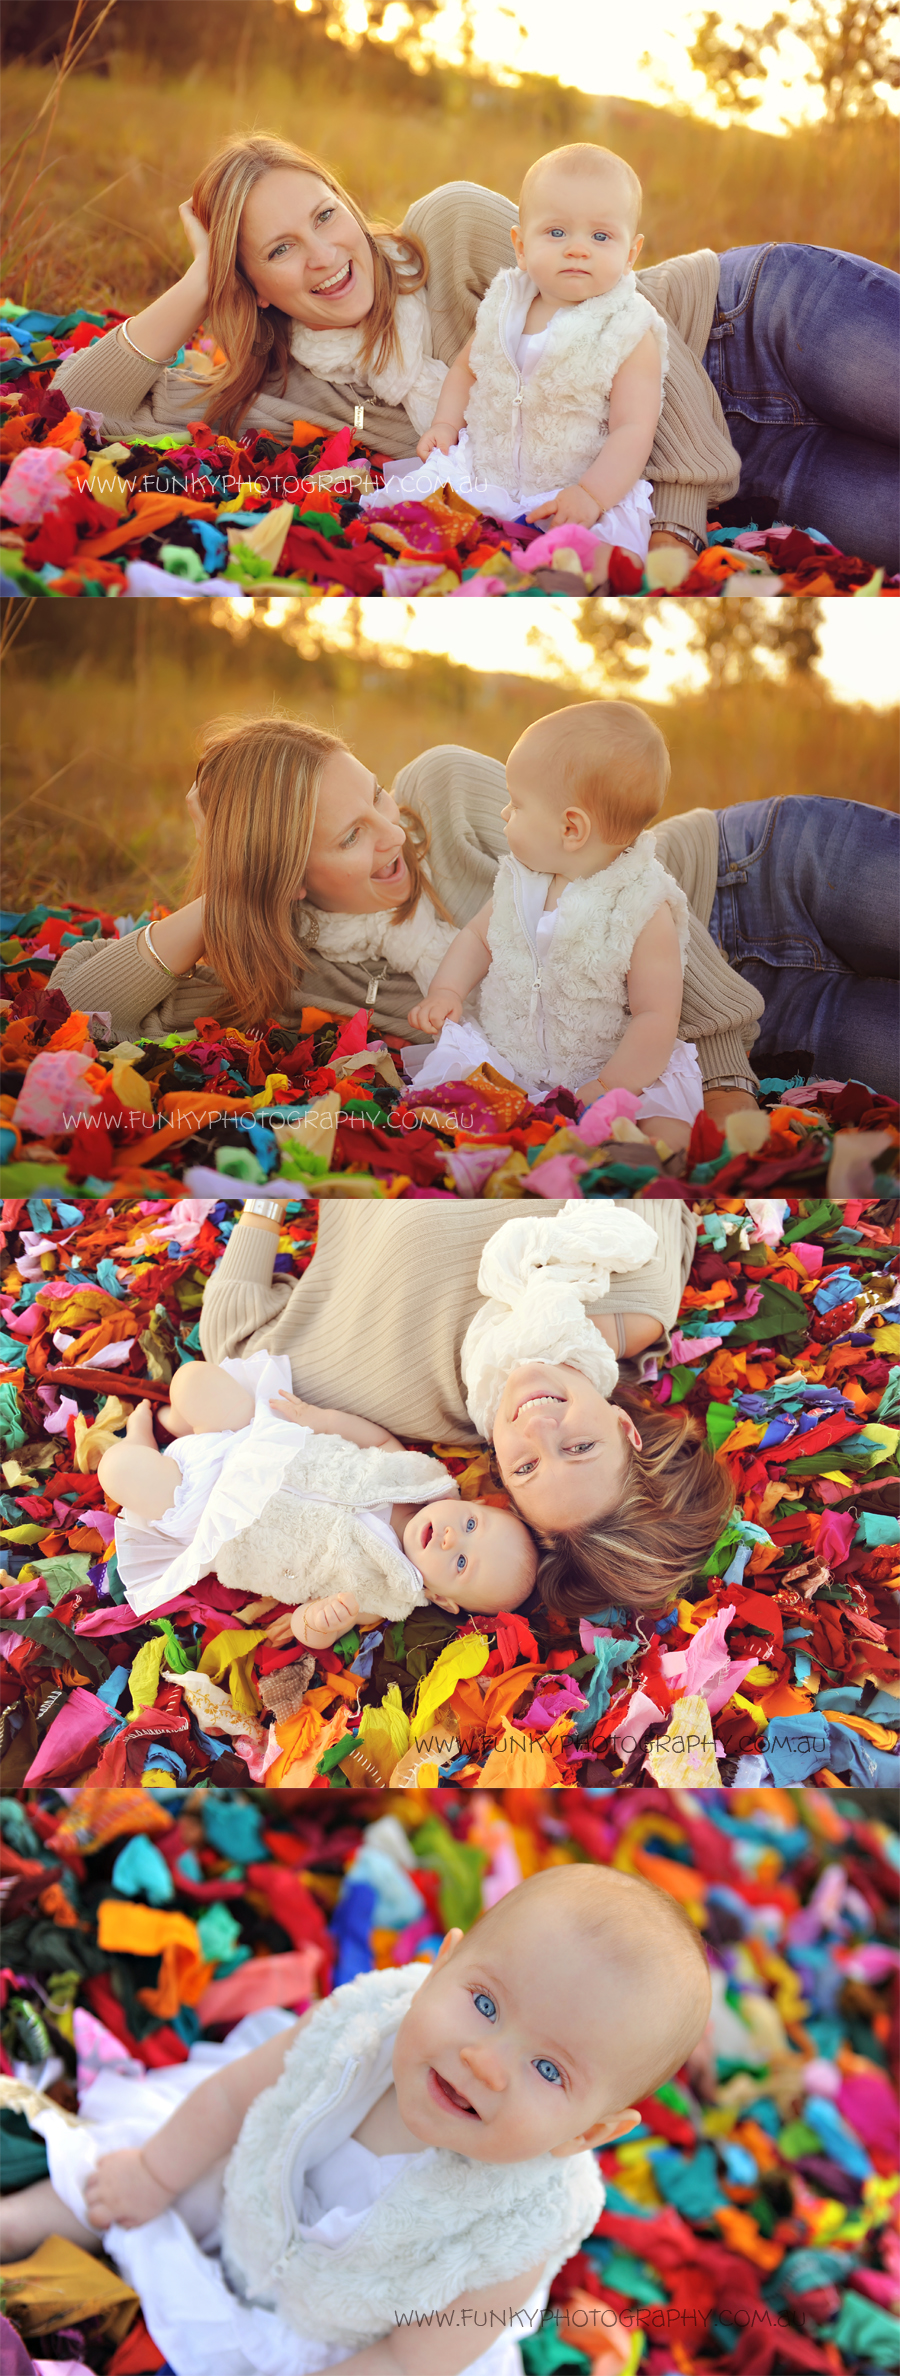 mum and baby cuddles on a brightly colored rug